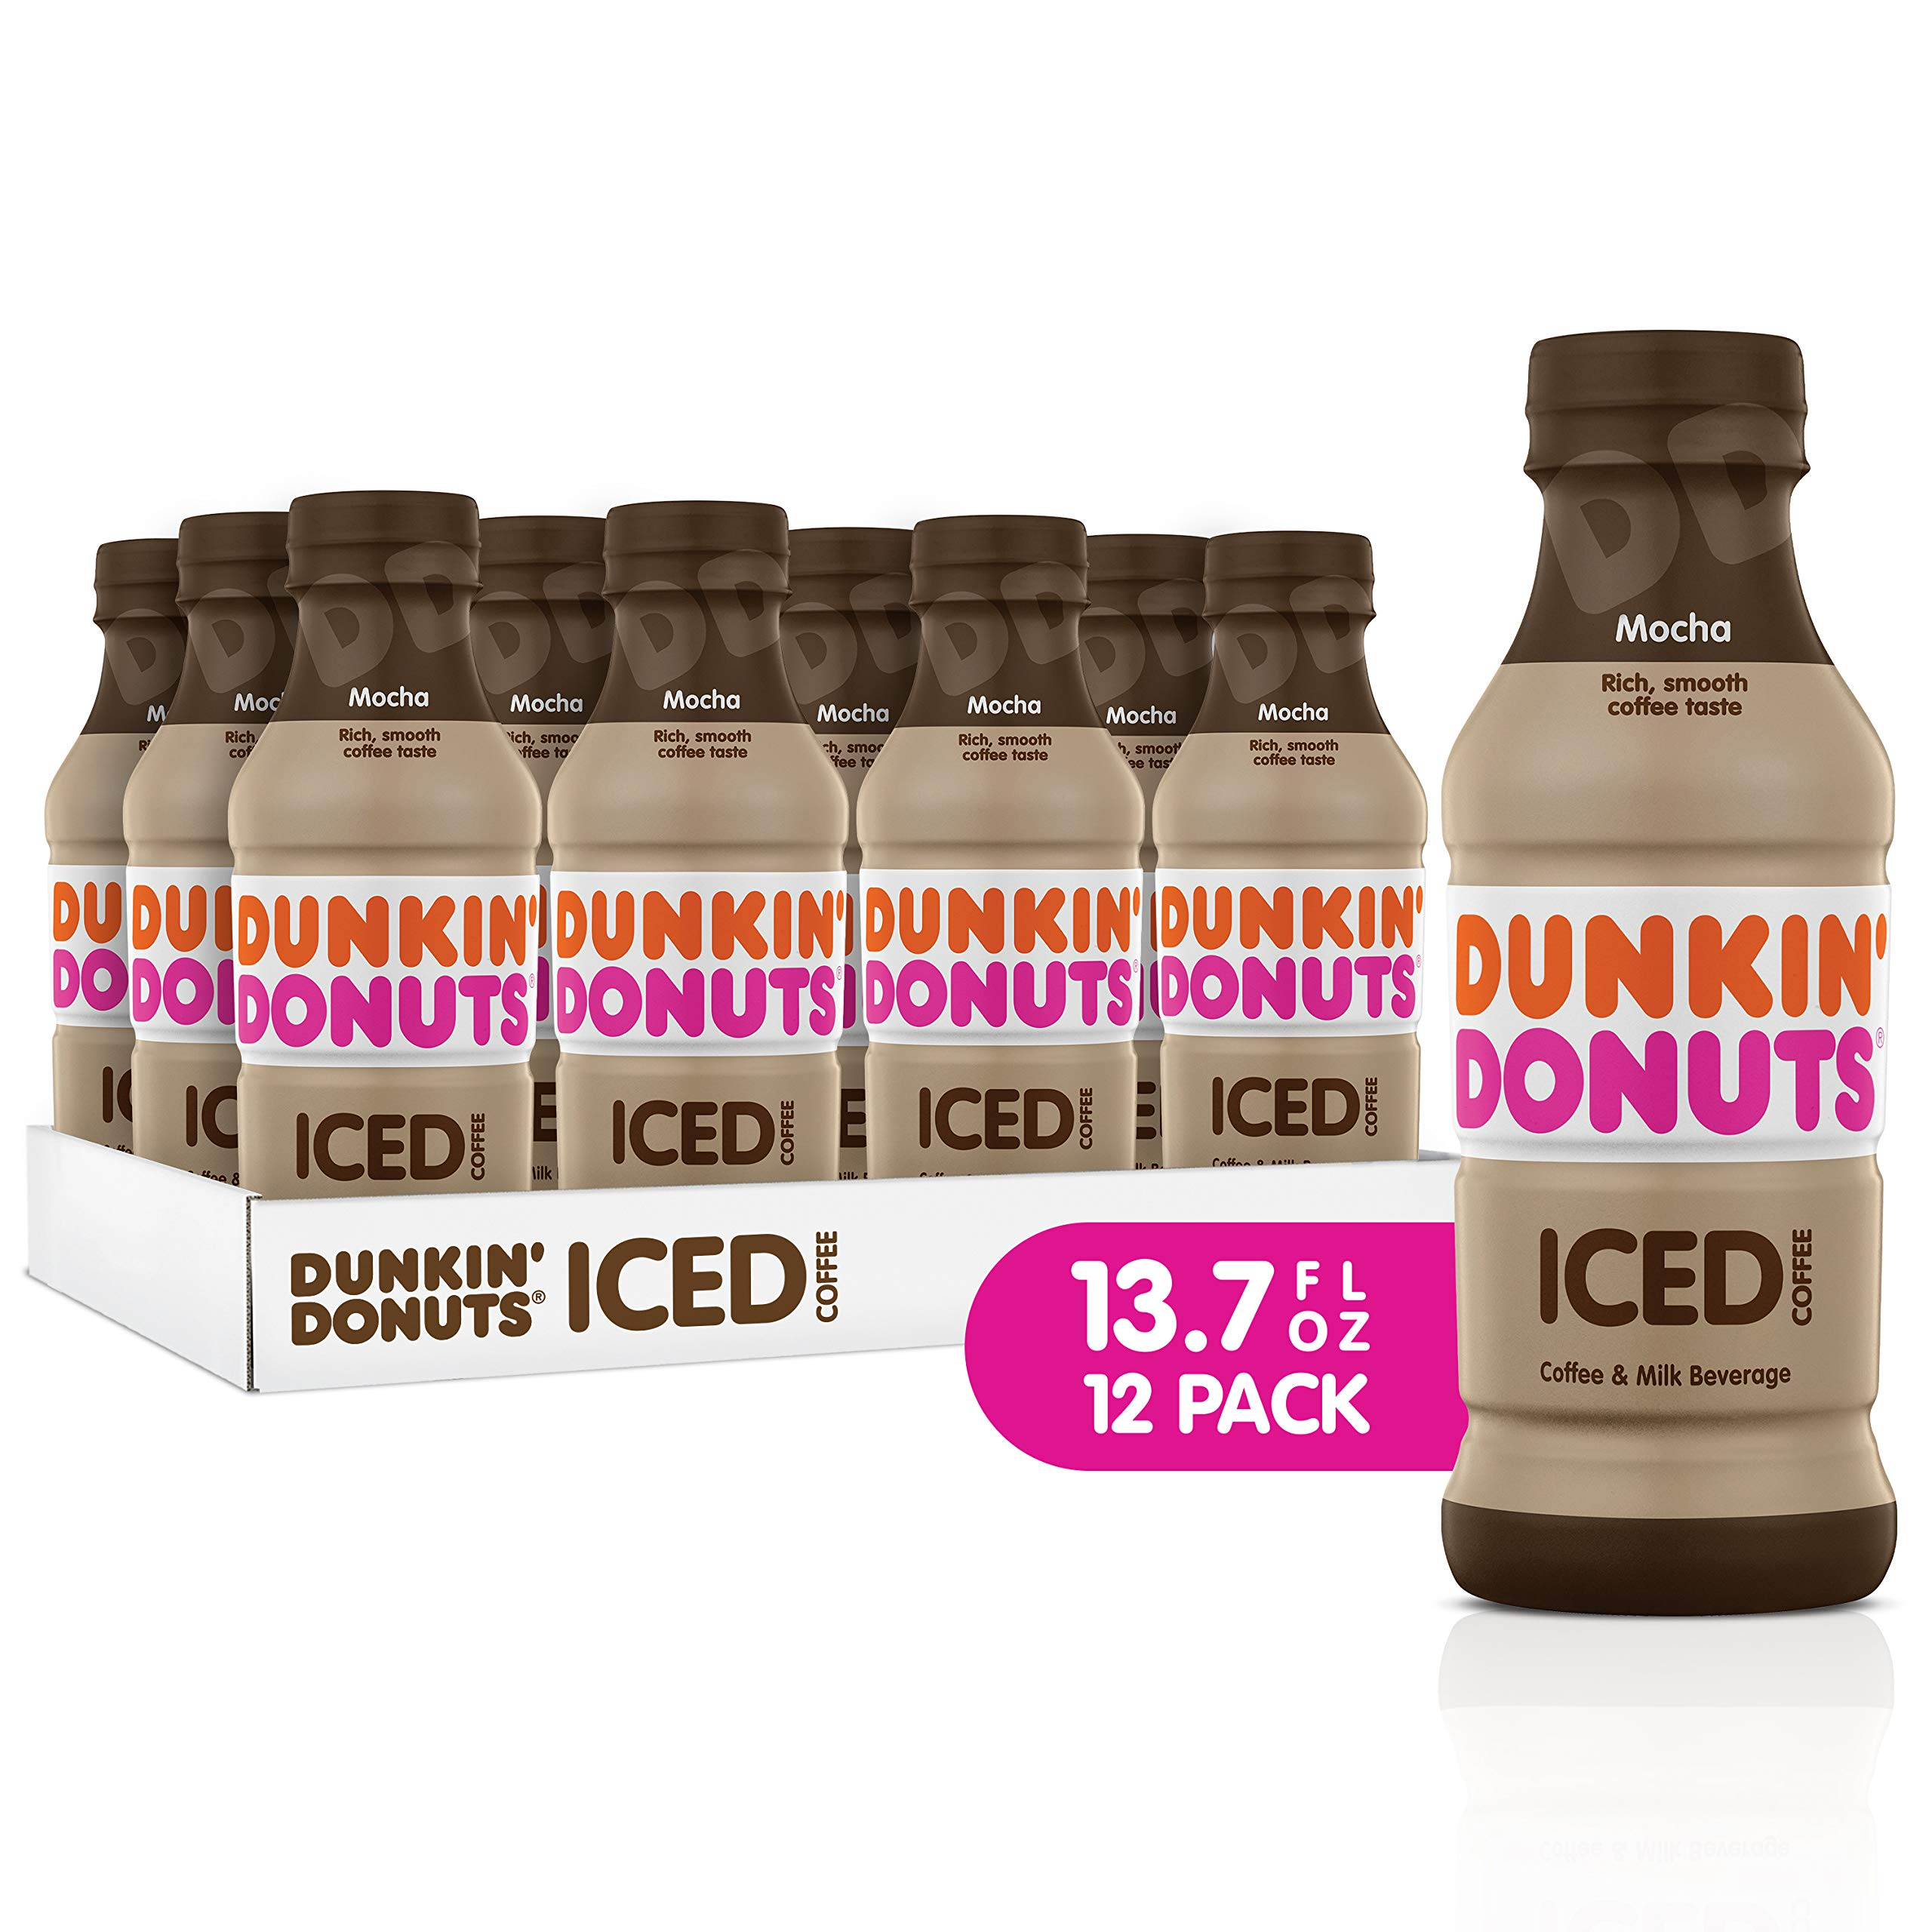 Dunkin Donuts Iced Coffee, Mocha, 13.7 Fluid Ounce (Pack of 12) by Dunkin Donuts